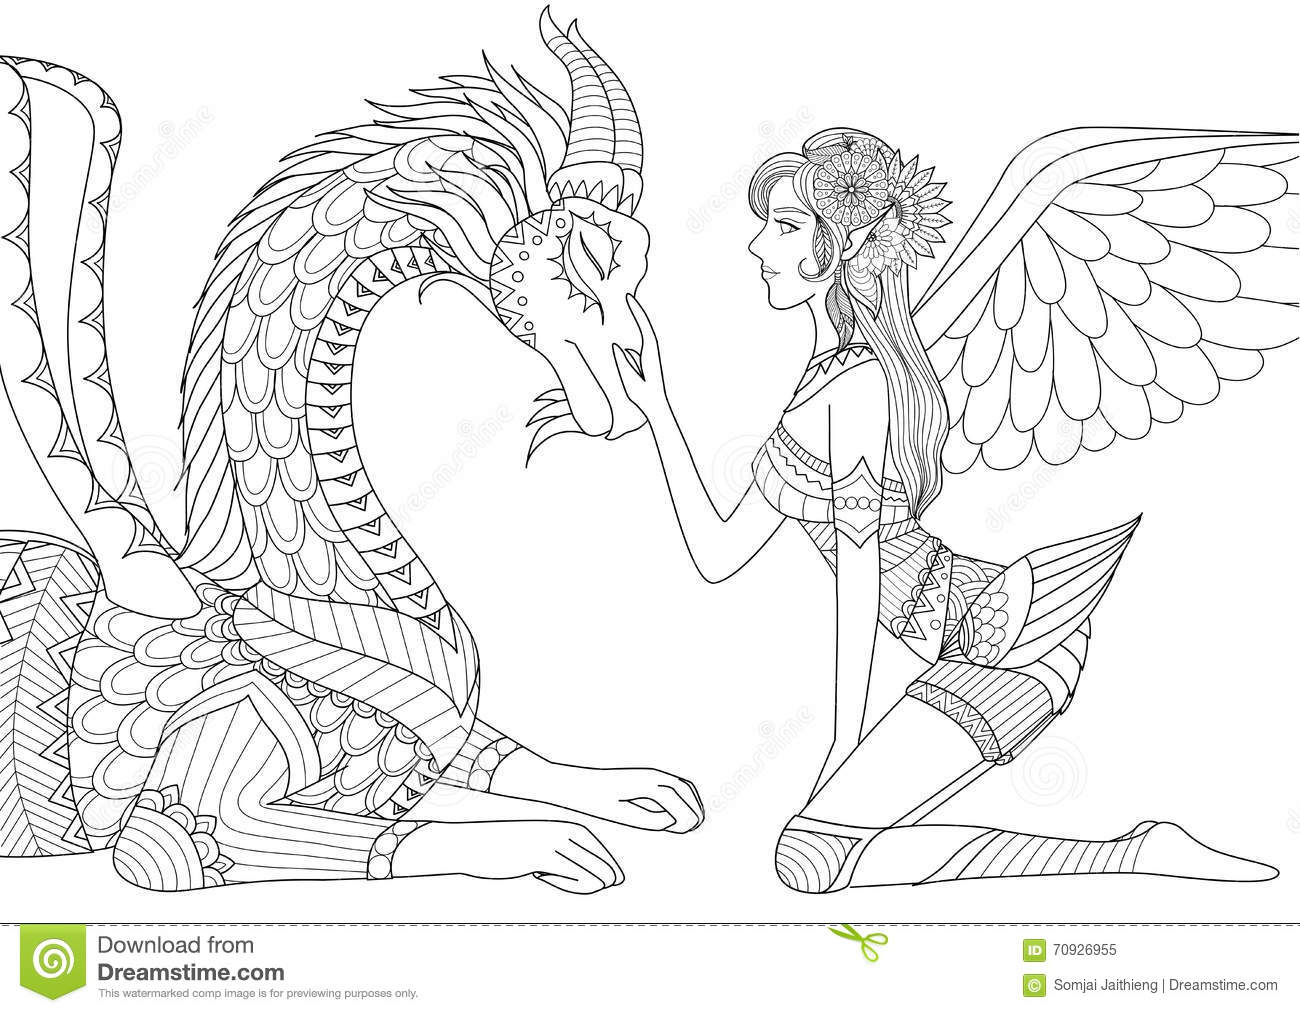 Dragon Is At Mercy Of Beautiful Angel, Line Art Design For Coloring ...